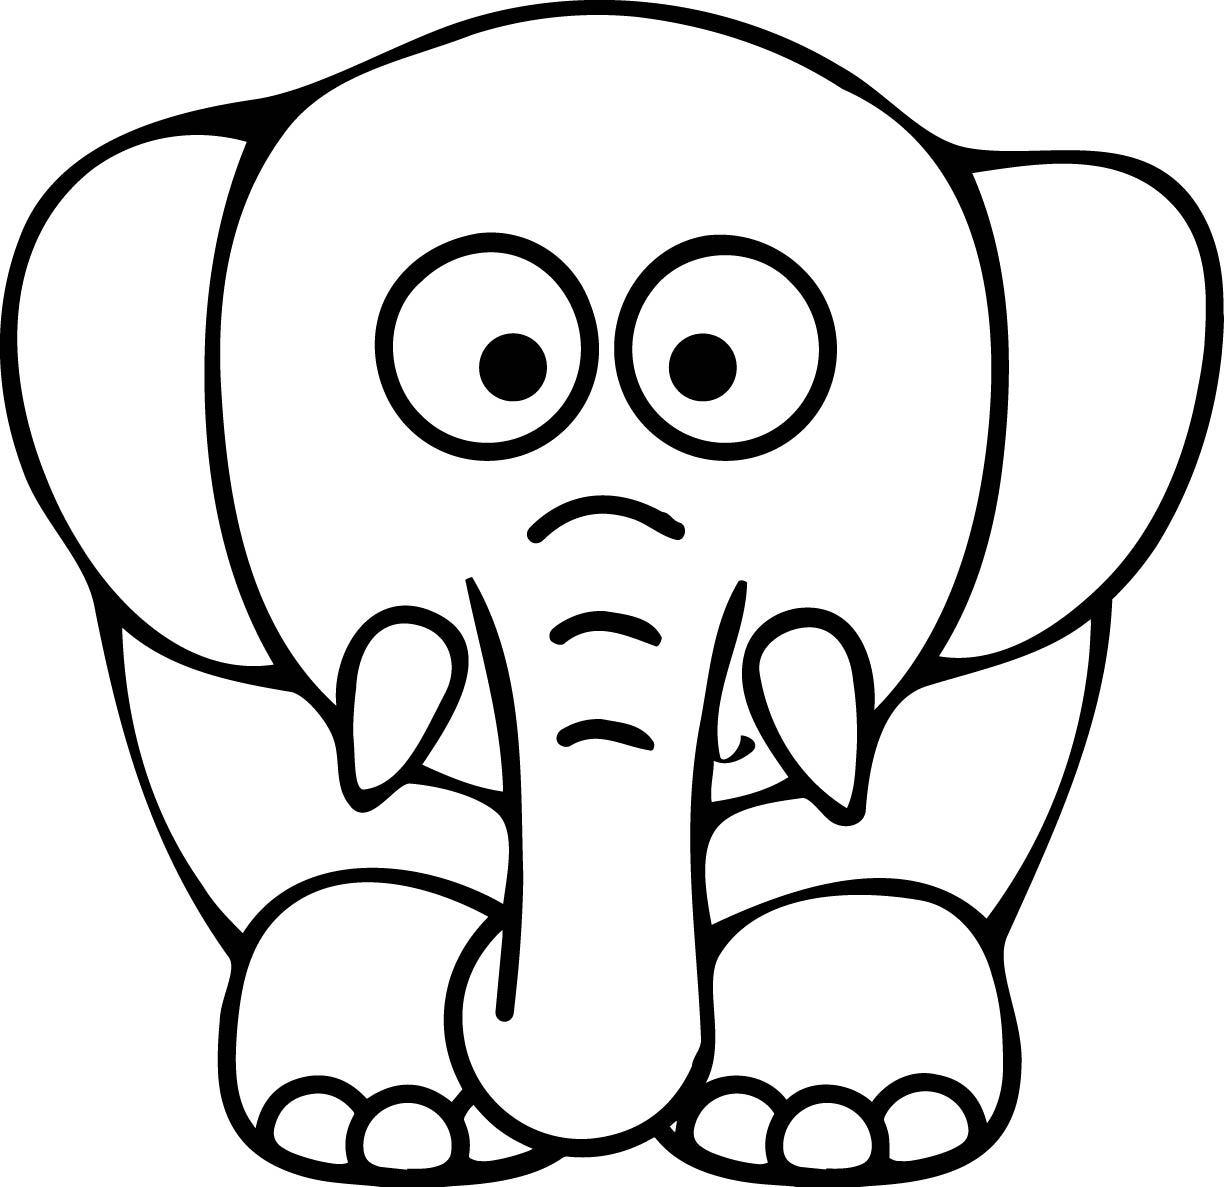 1224x1187 Elephant Coloring Page Pages For Elephants